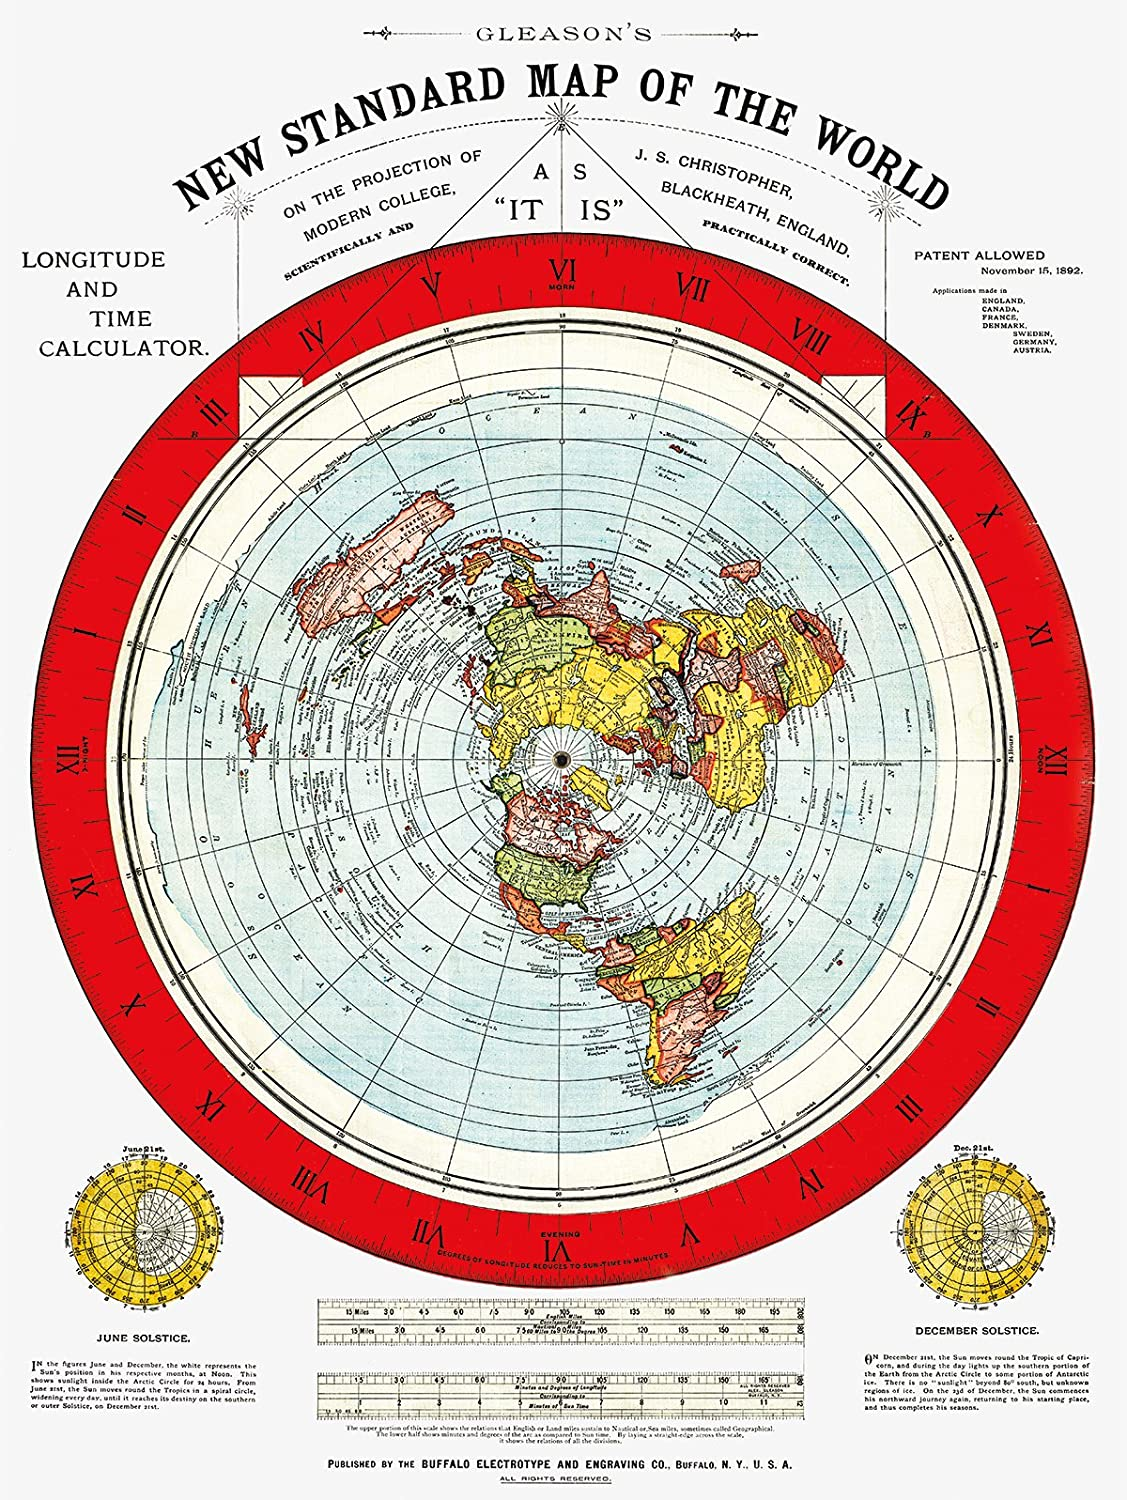 Flat Earth Map Image Amazon.com: Flat Earth Map   Gleason's New Standard Map of The